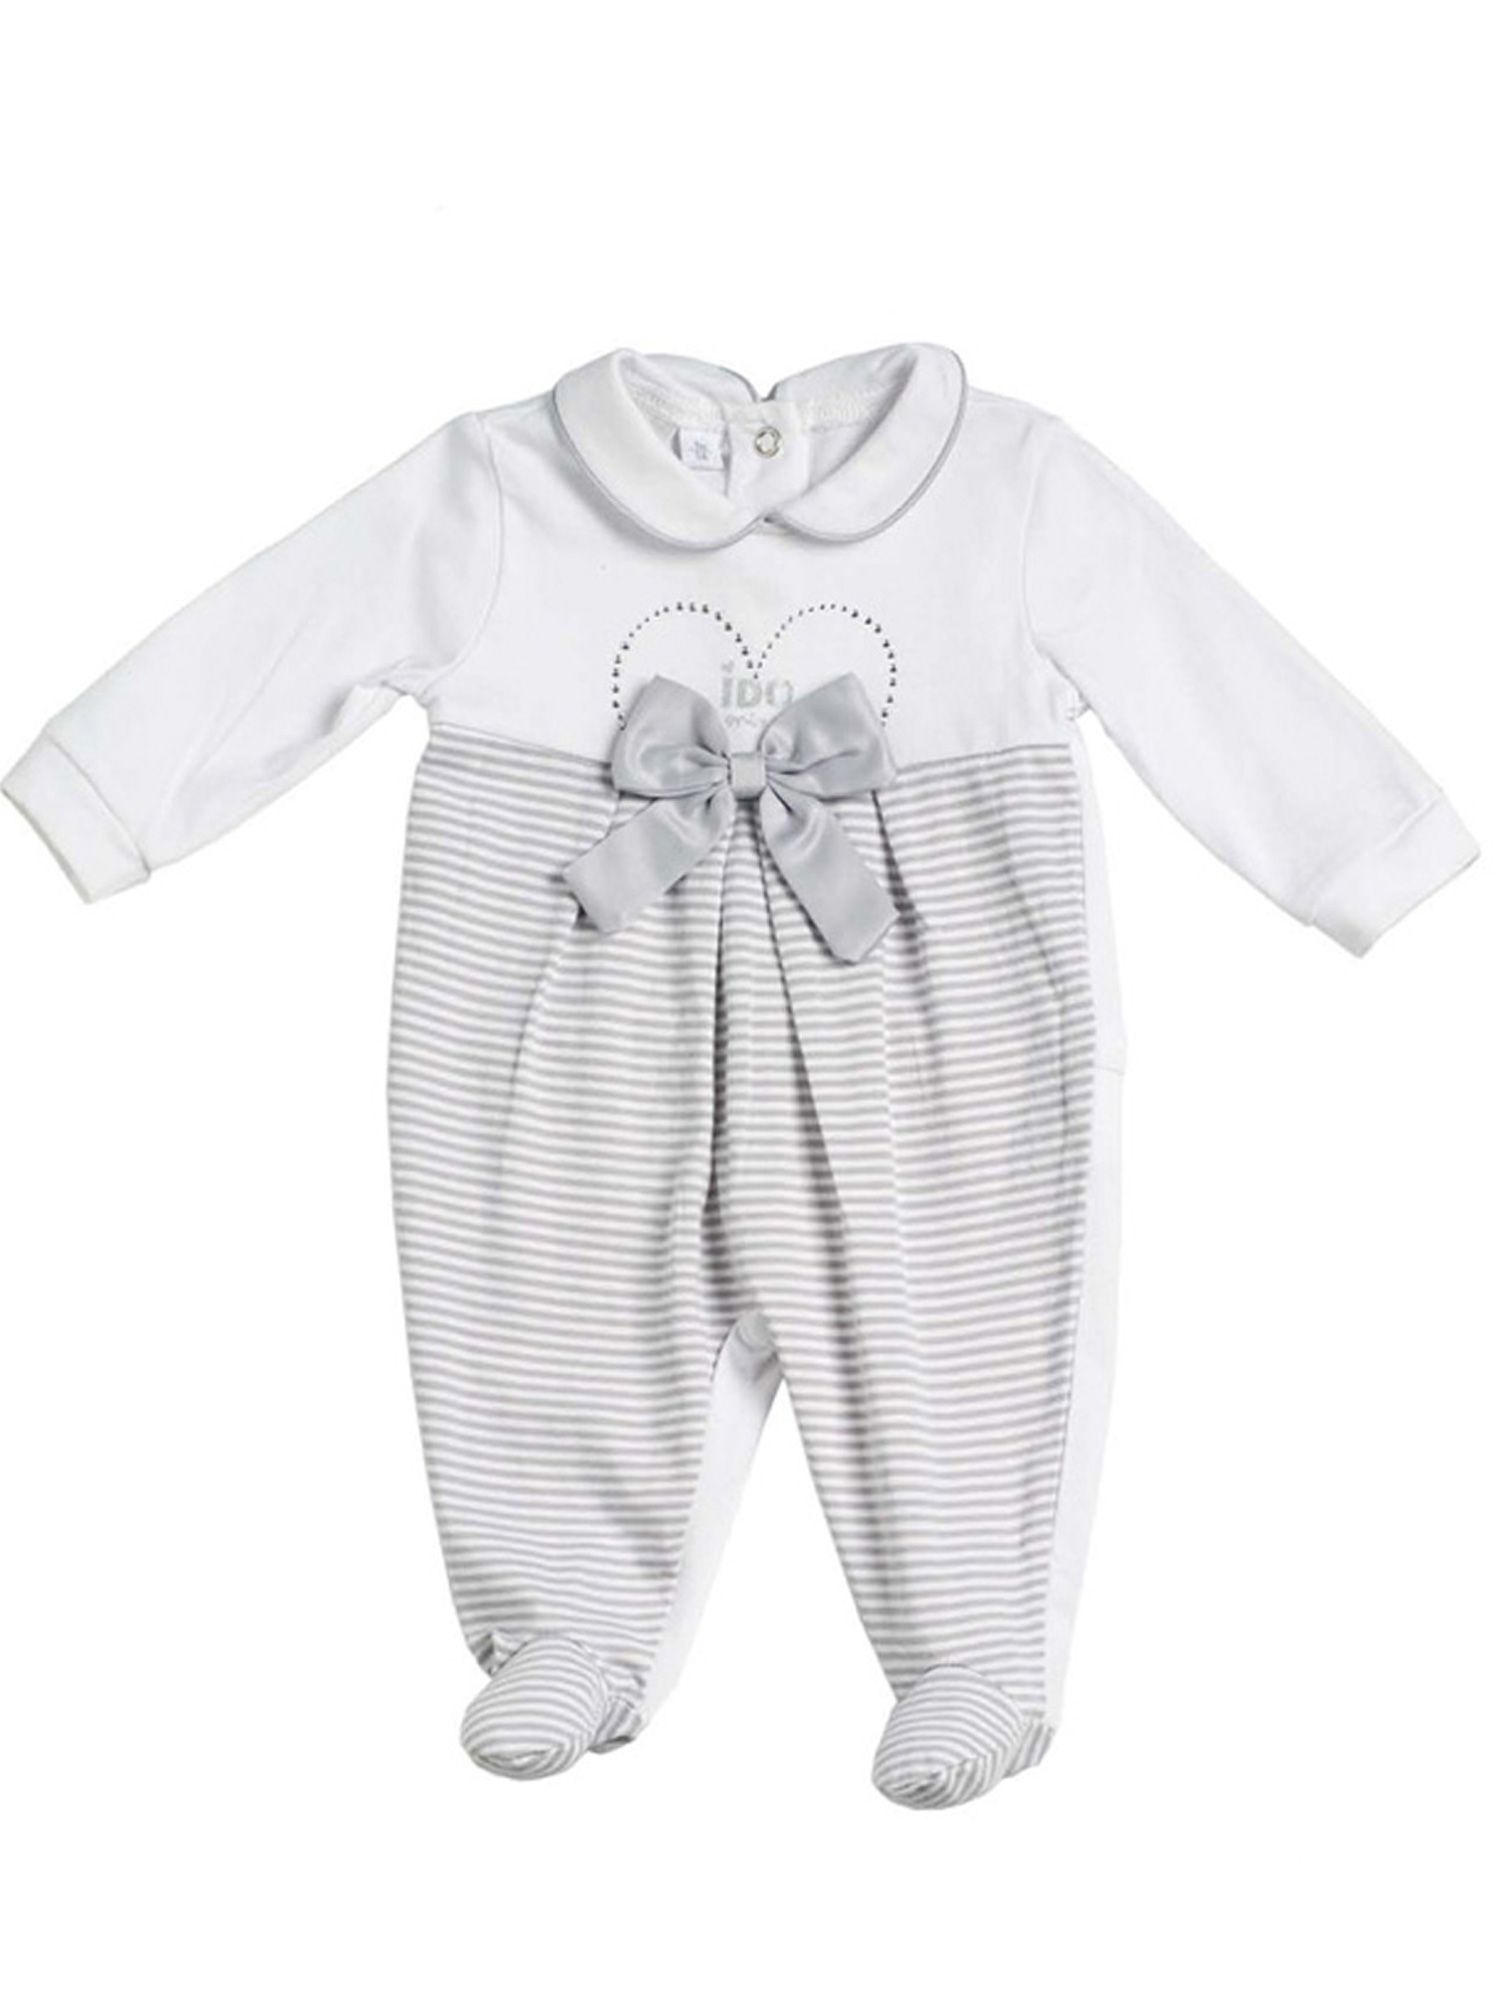 Girls white and grey cotton all in one